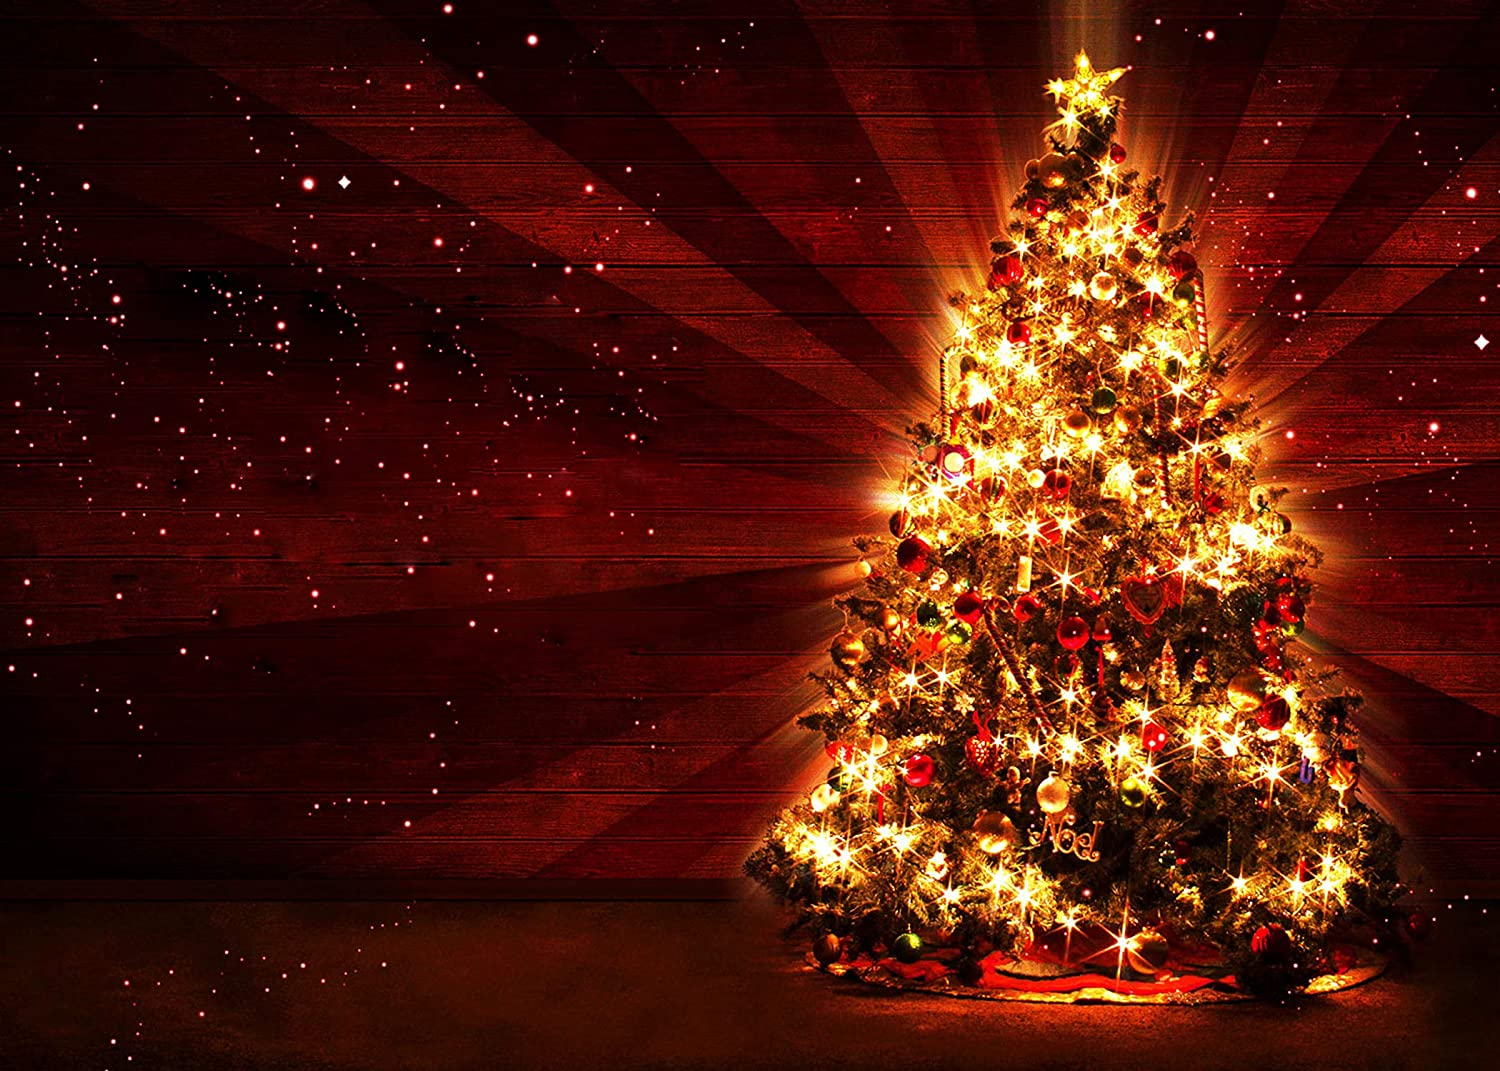 LYLYCTY 7x5ft Bright Christmas Tree Background Full of Decorating Dark red Backdrops Party Decor Portrait Photo Booth Studio Props Wallpaper LYLS1089